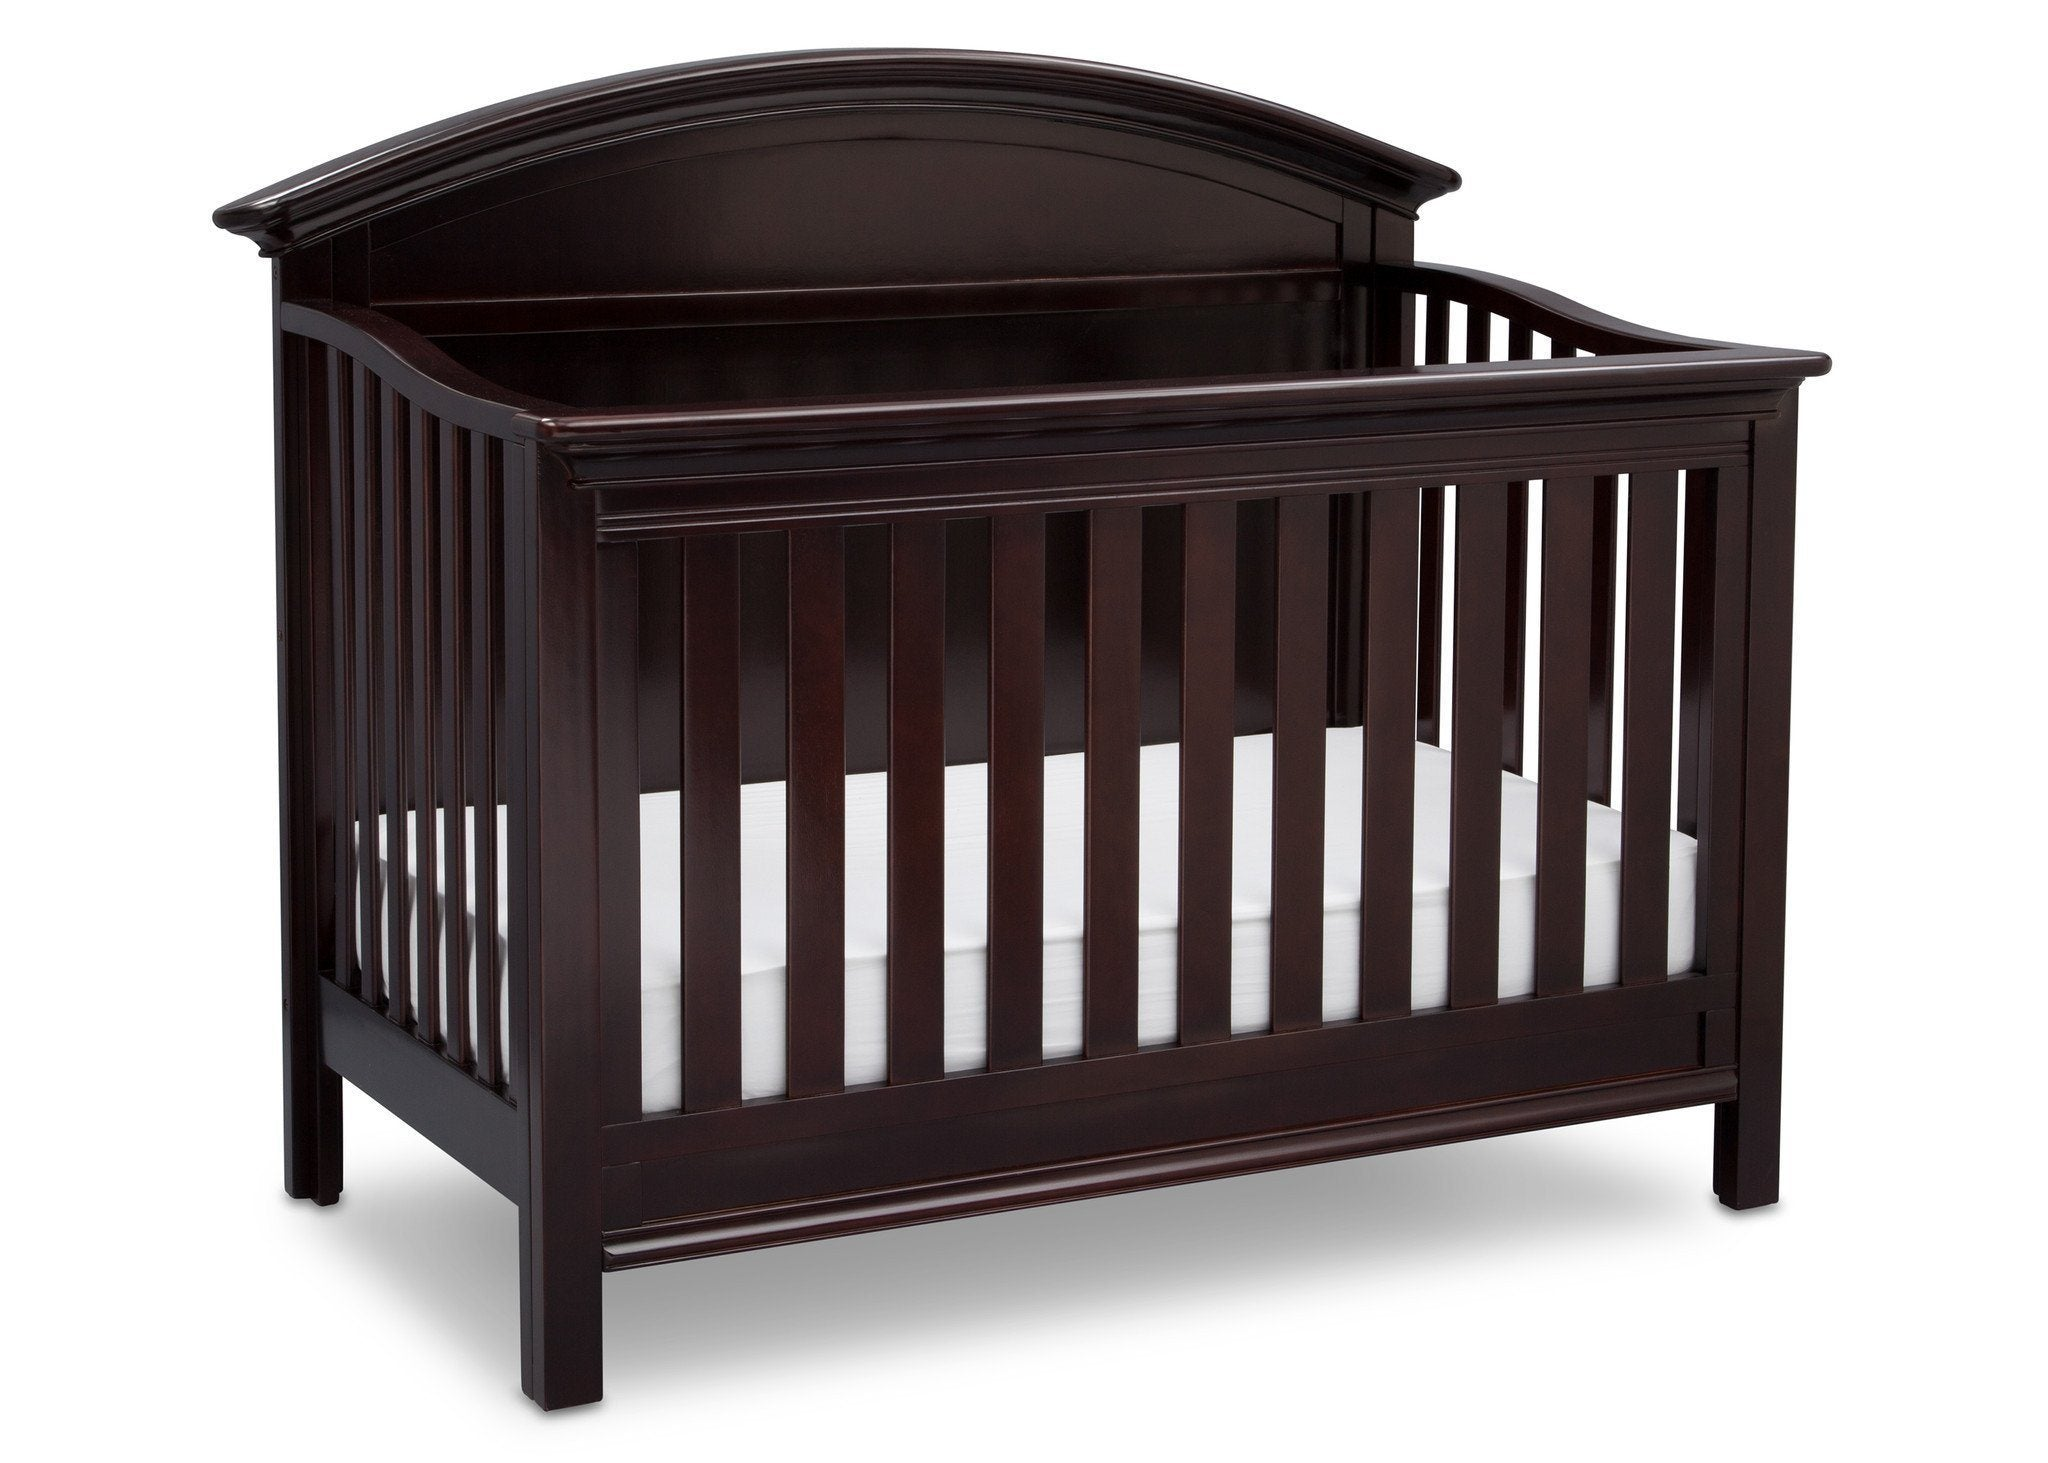 Serta Dark Chocolate (207) Adelaide 4-in-1 Crib, Side View with Crib Conversion c4c